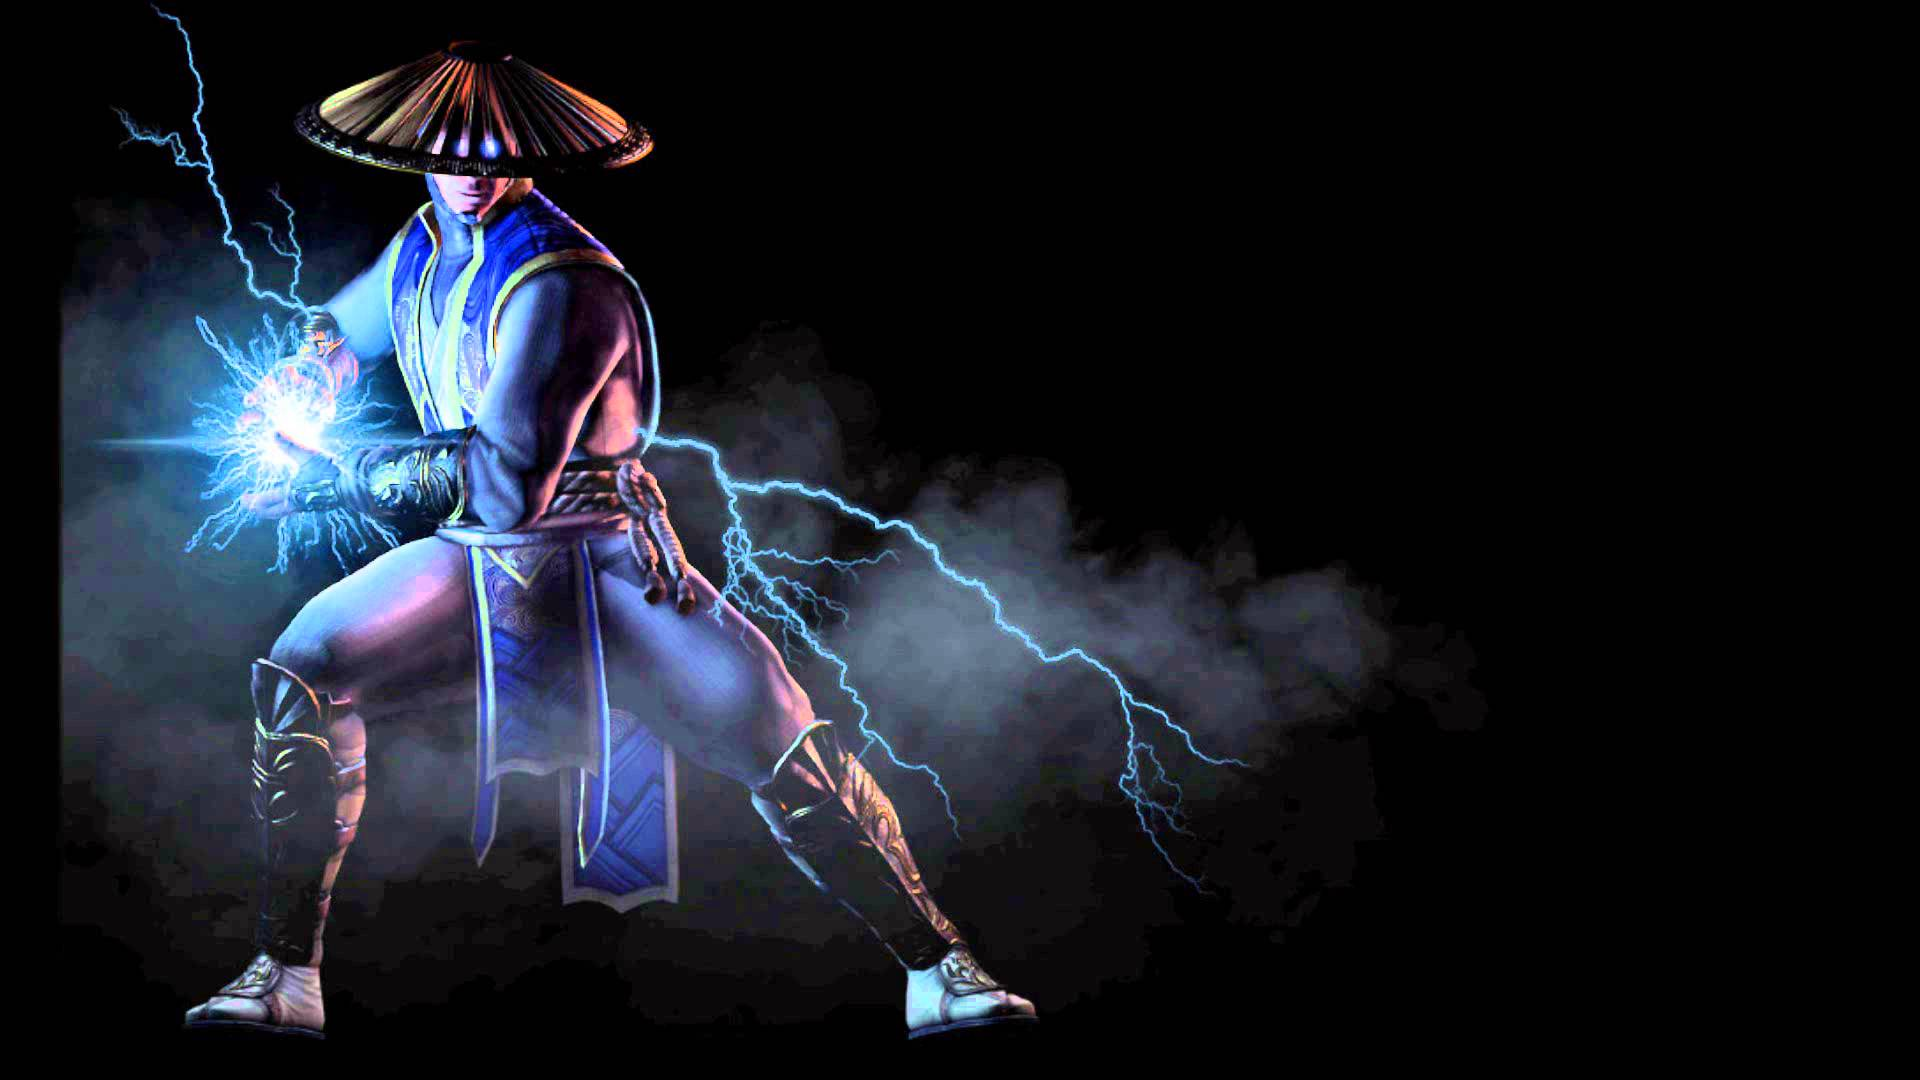 dark raiden mortal kombat wallpaper - crazywidow